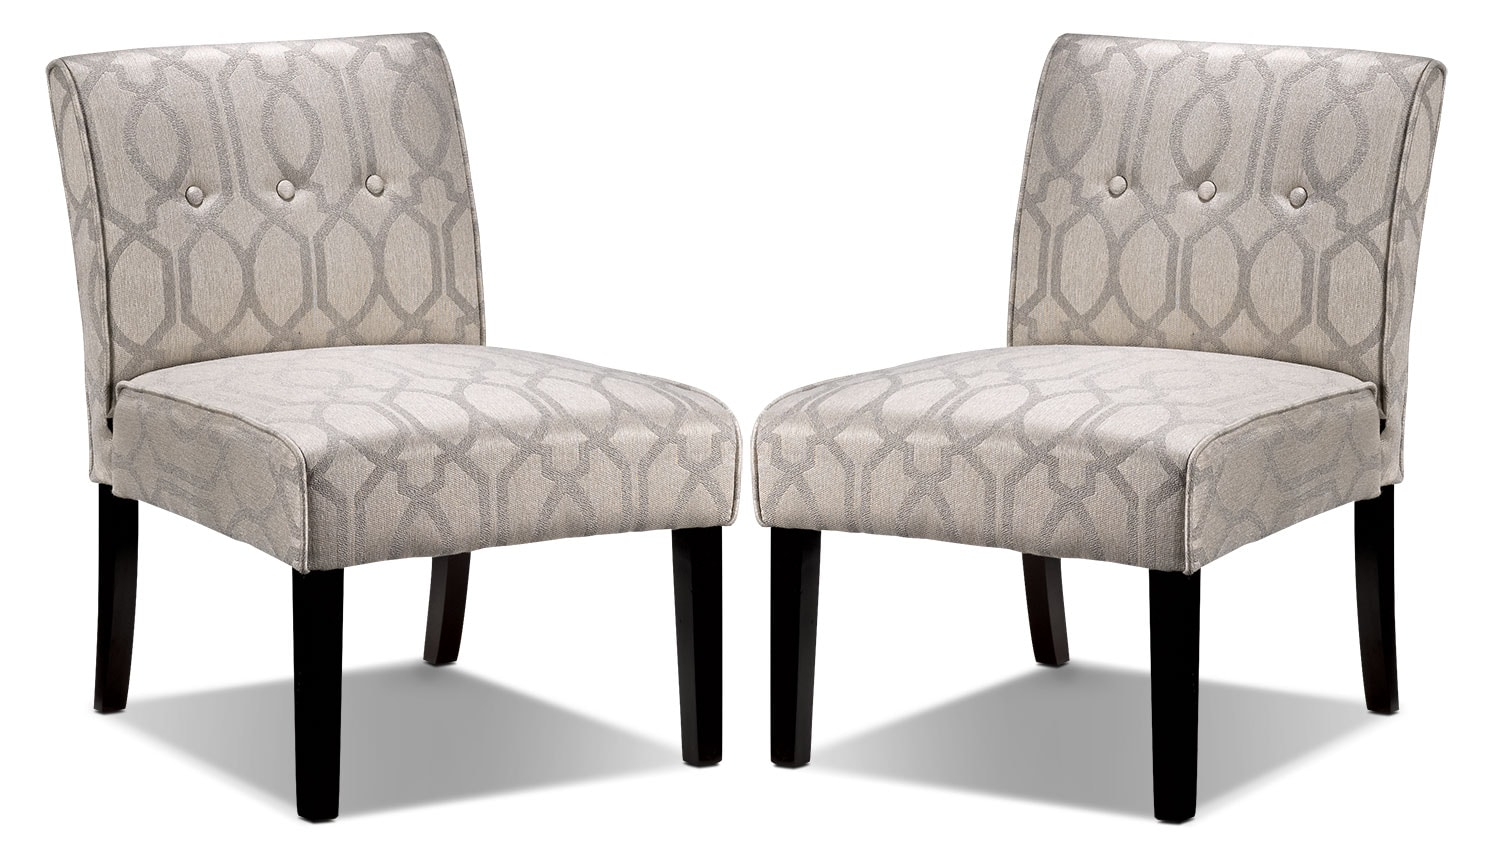 Candace 2-Piece Accent Chair Set